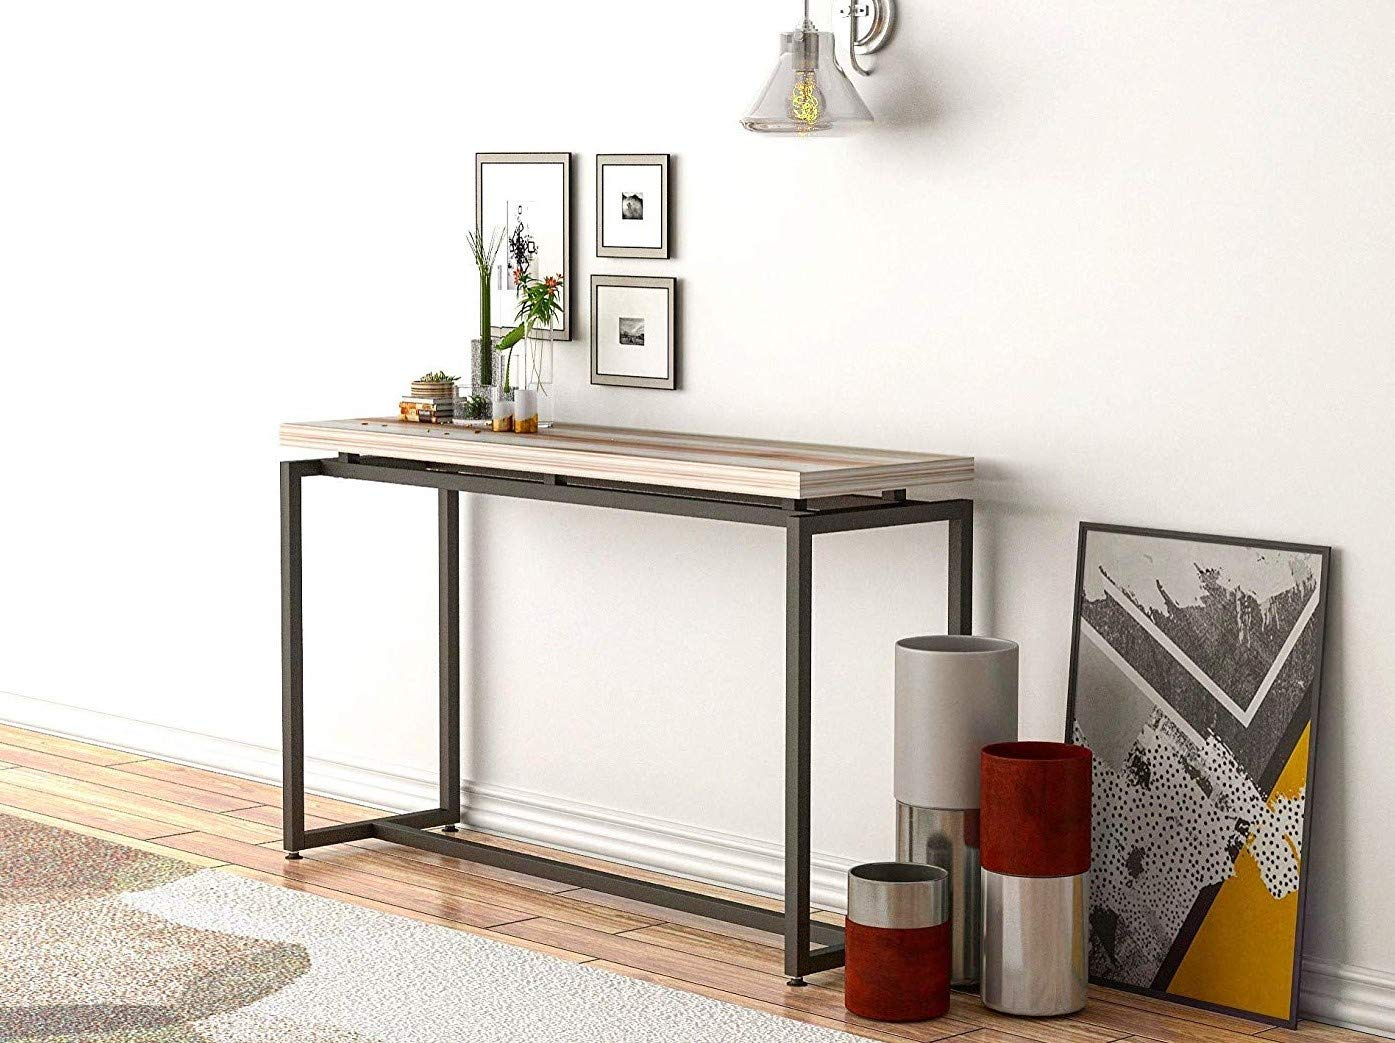 Stimber Design David Console Table, Modern Elegant Slim Design, Entry Table, Table Behind Couch, Space Saving Desk, Narrow Sofa Table, Hallway Table, Couch Table, Industrial Style by Stimber Design